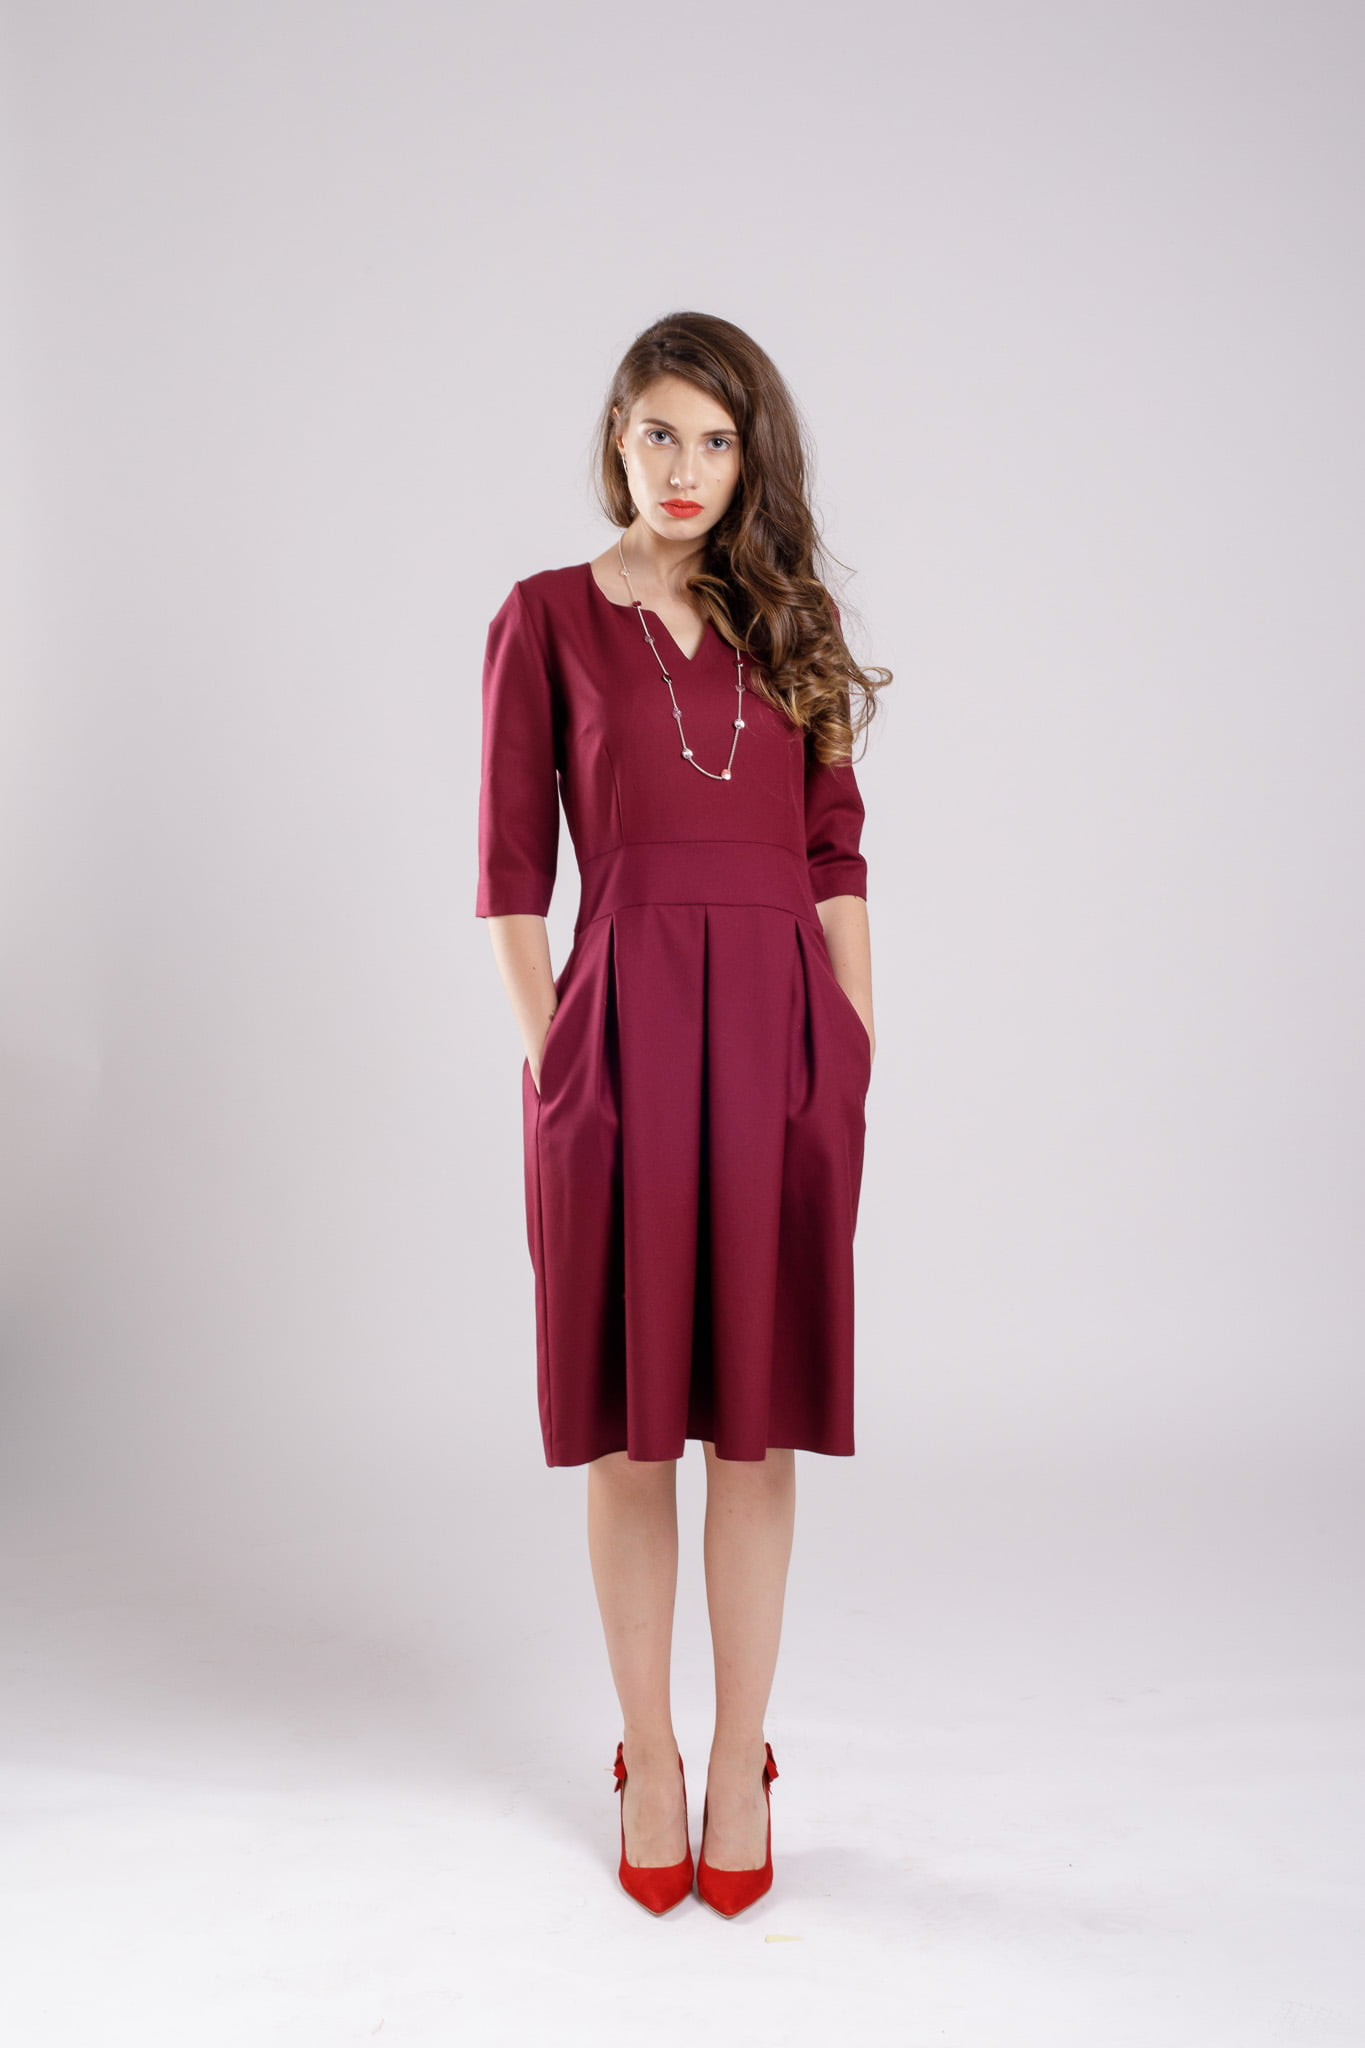 rochie pliuri burgundy dress